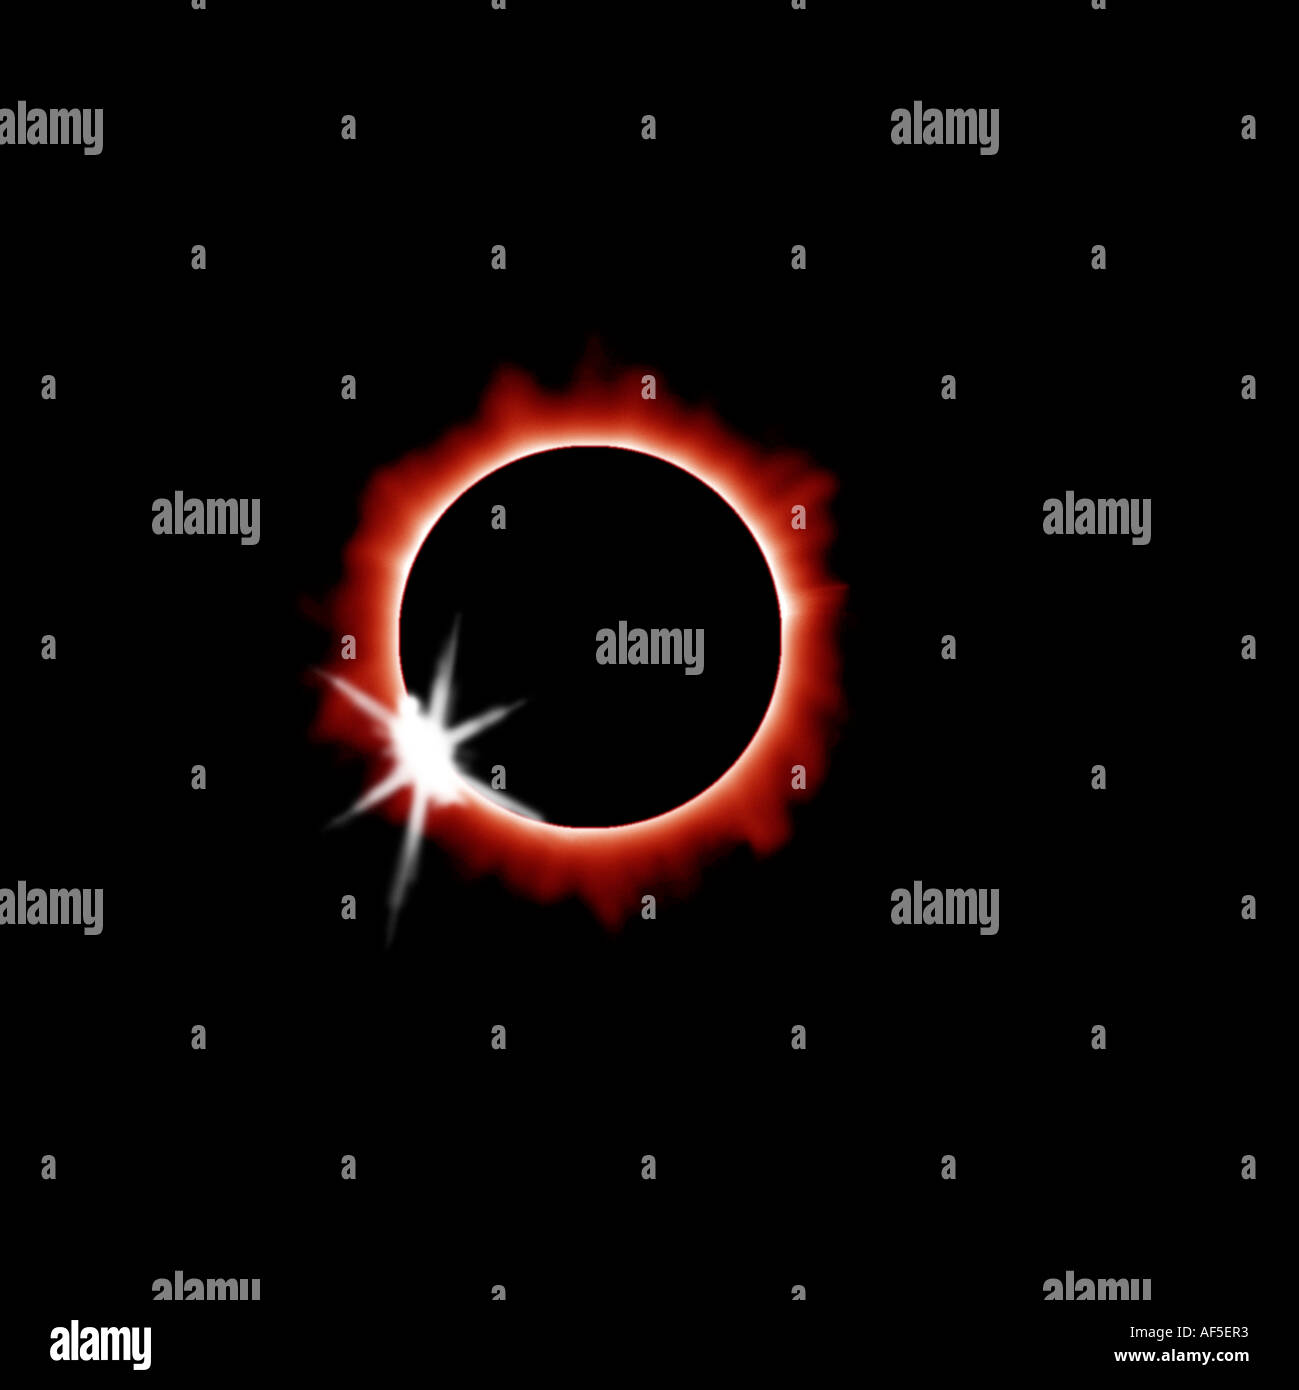 solar eclipse total eclipse black circle ring of fire solar flare corona black sky diamond ring effect red colour eclipse sky ni - Stock Image